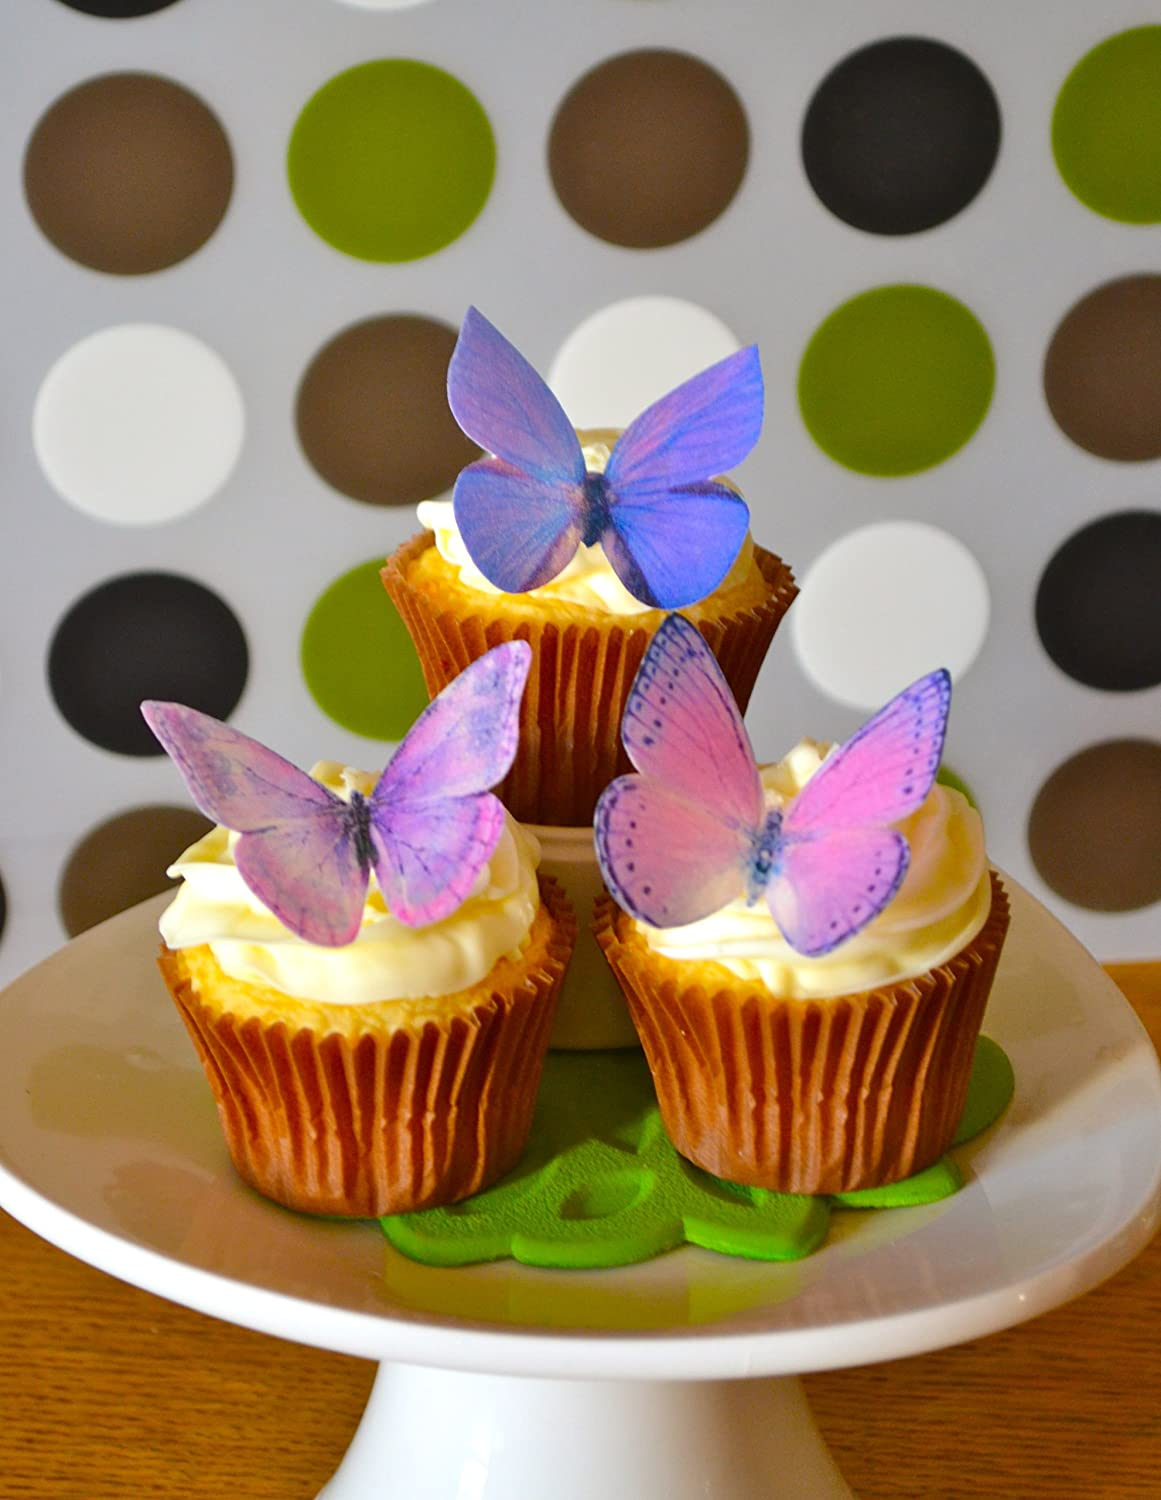 Amazon edible butterflies large purple set of 12 cake and amazon edible butterflies large purple set of 12 cake and cupcake toppers decoration kitchen dining junglespirit Choice Image